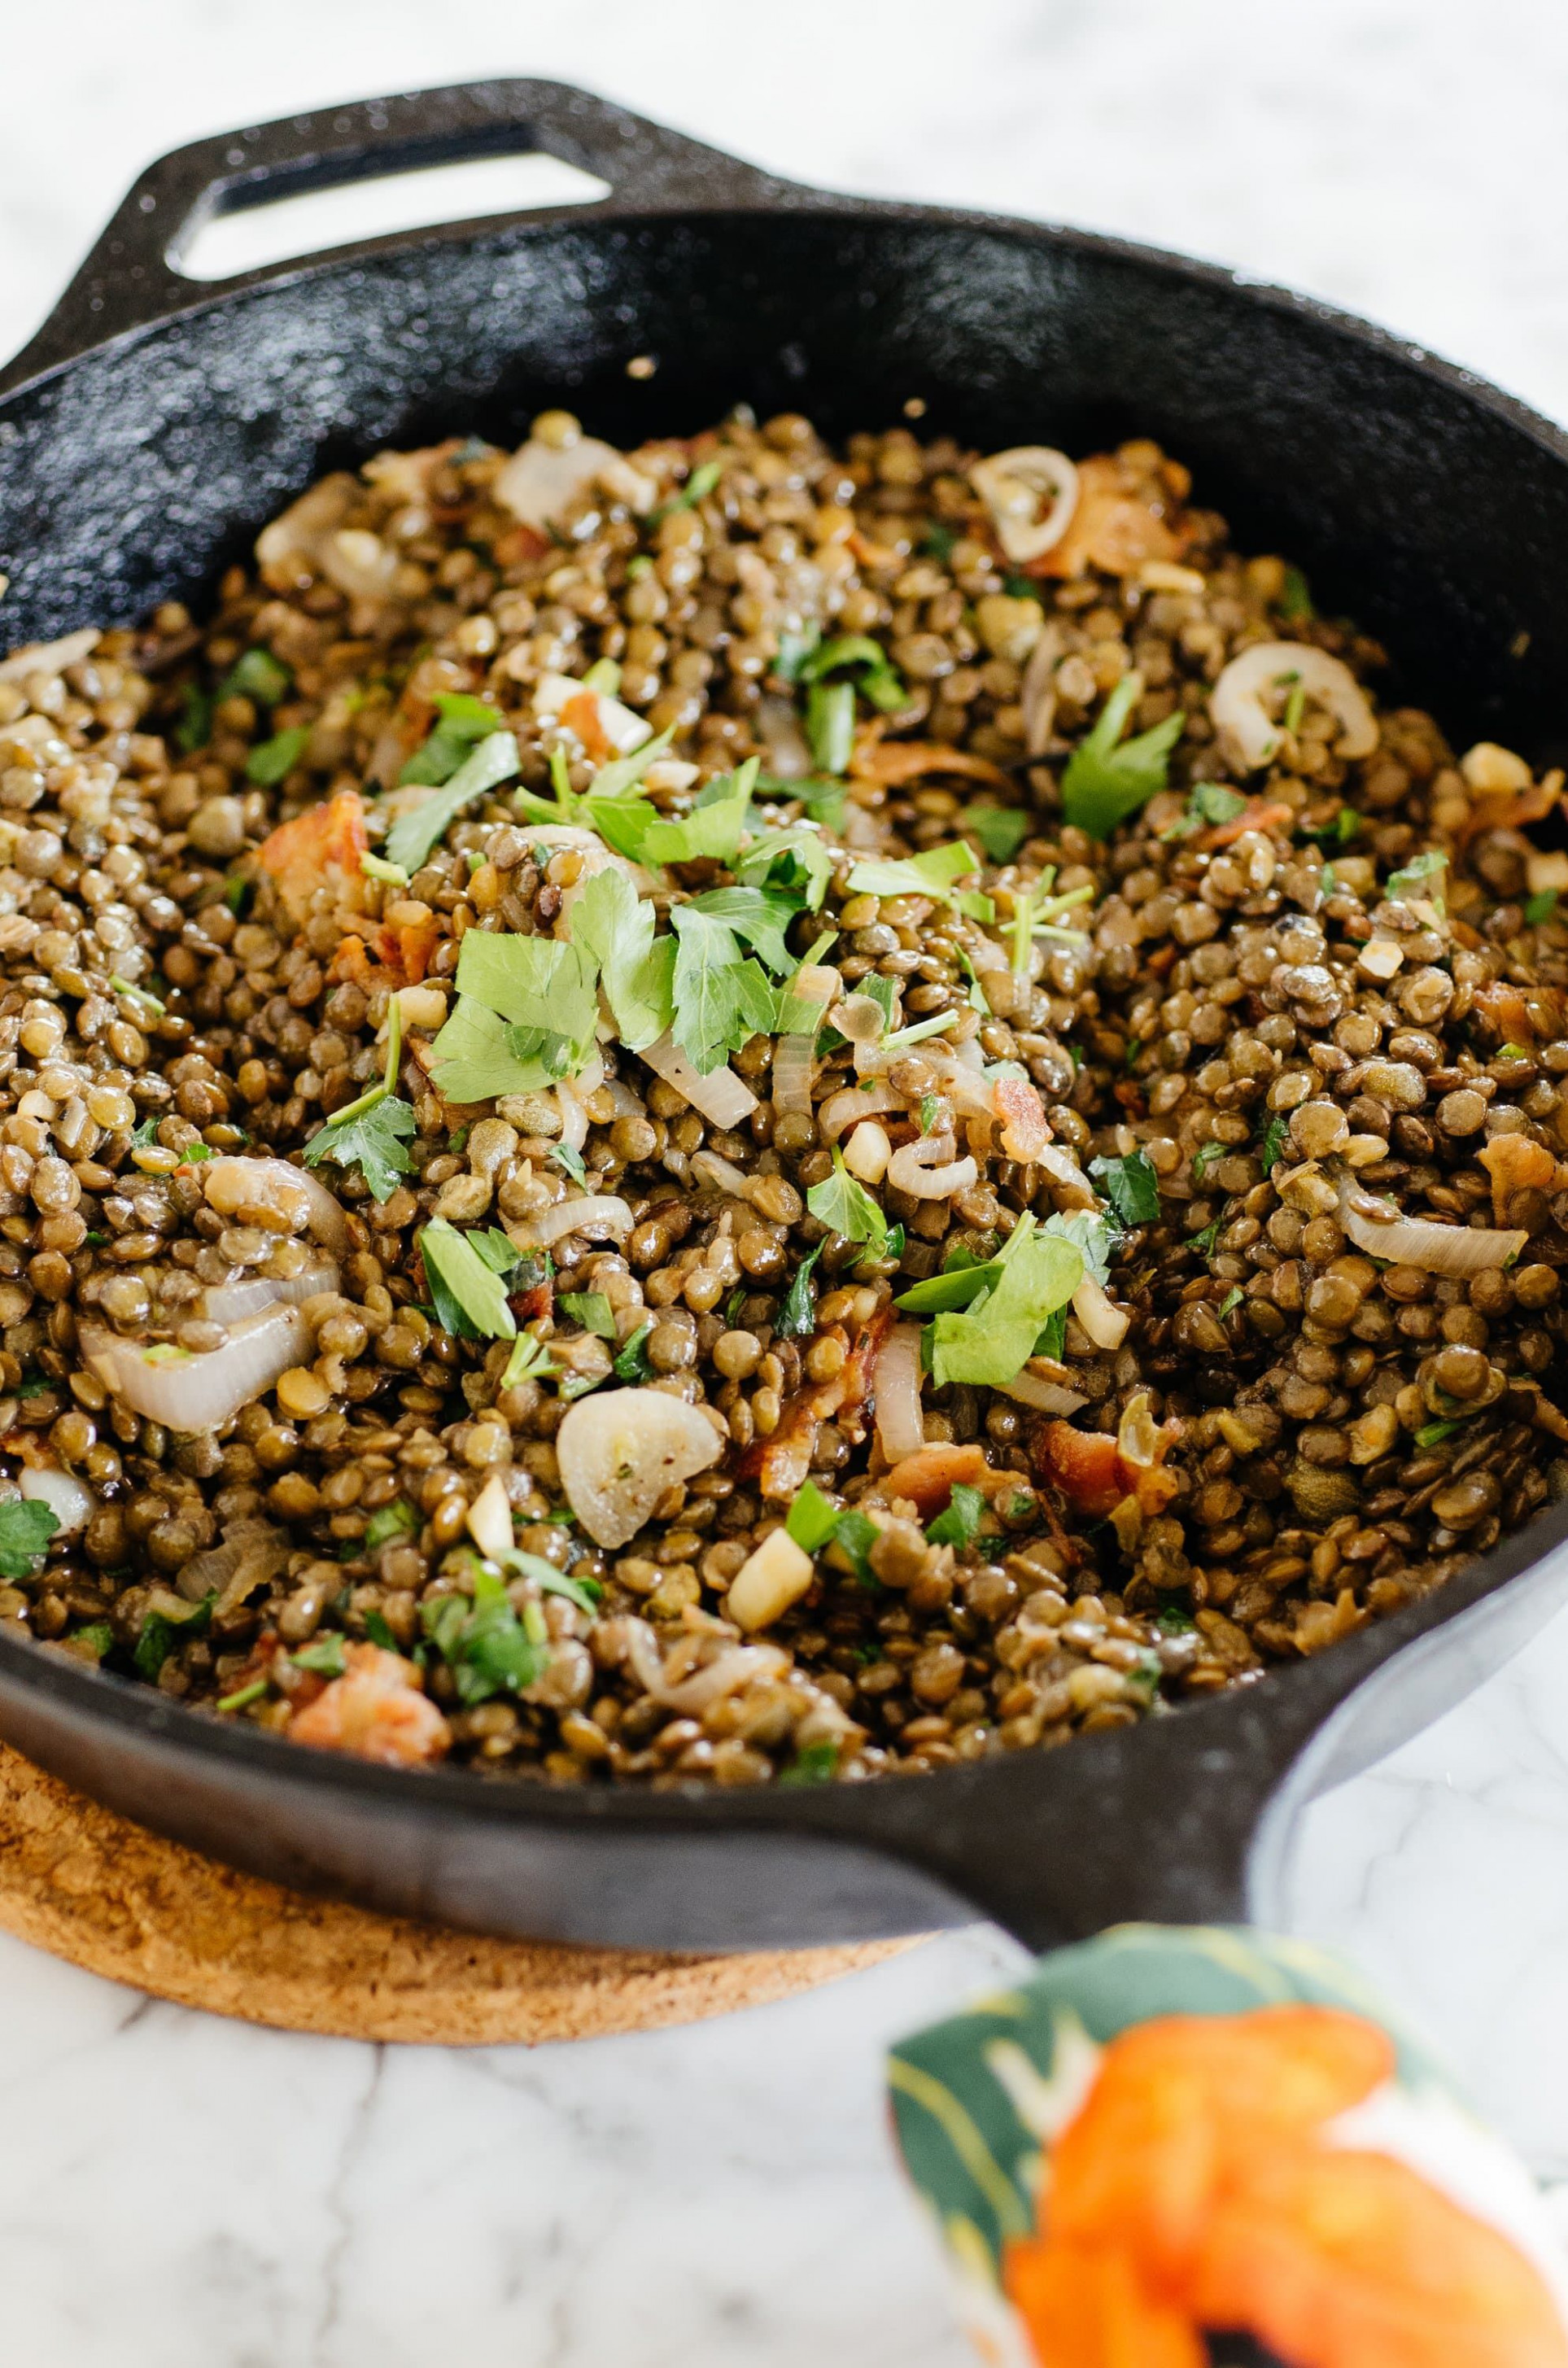 Warm French Lentil Salad with Bacon & Herbs | Recipe ...